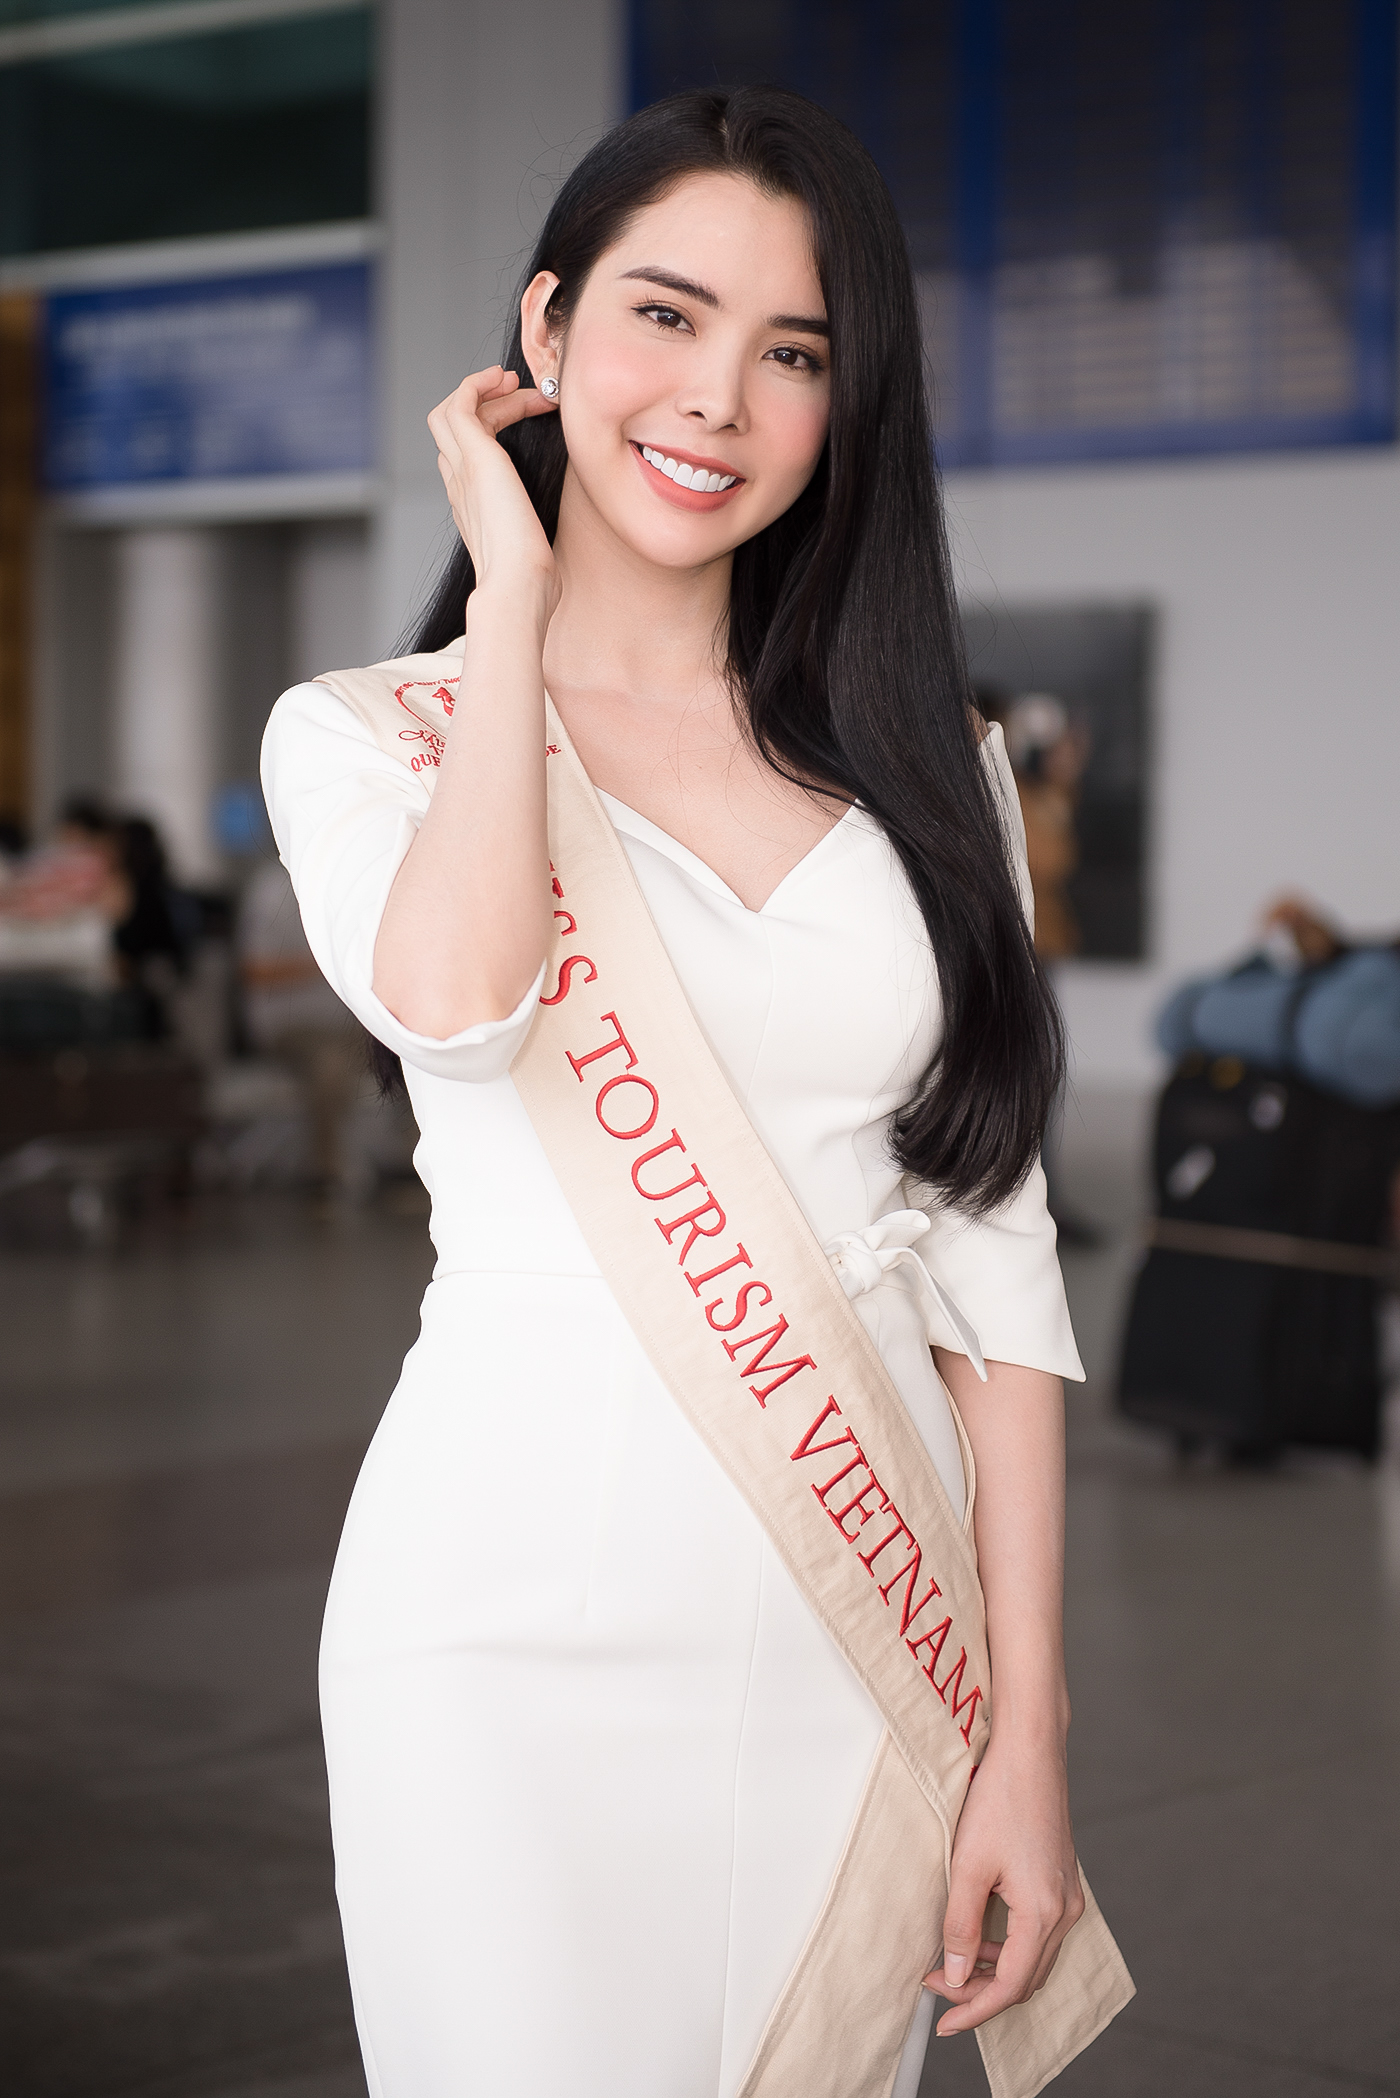 Lien Binh Phat tien Huynh Vy di thi Miss Tourism Queen Worldwide-Hinh-5